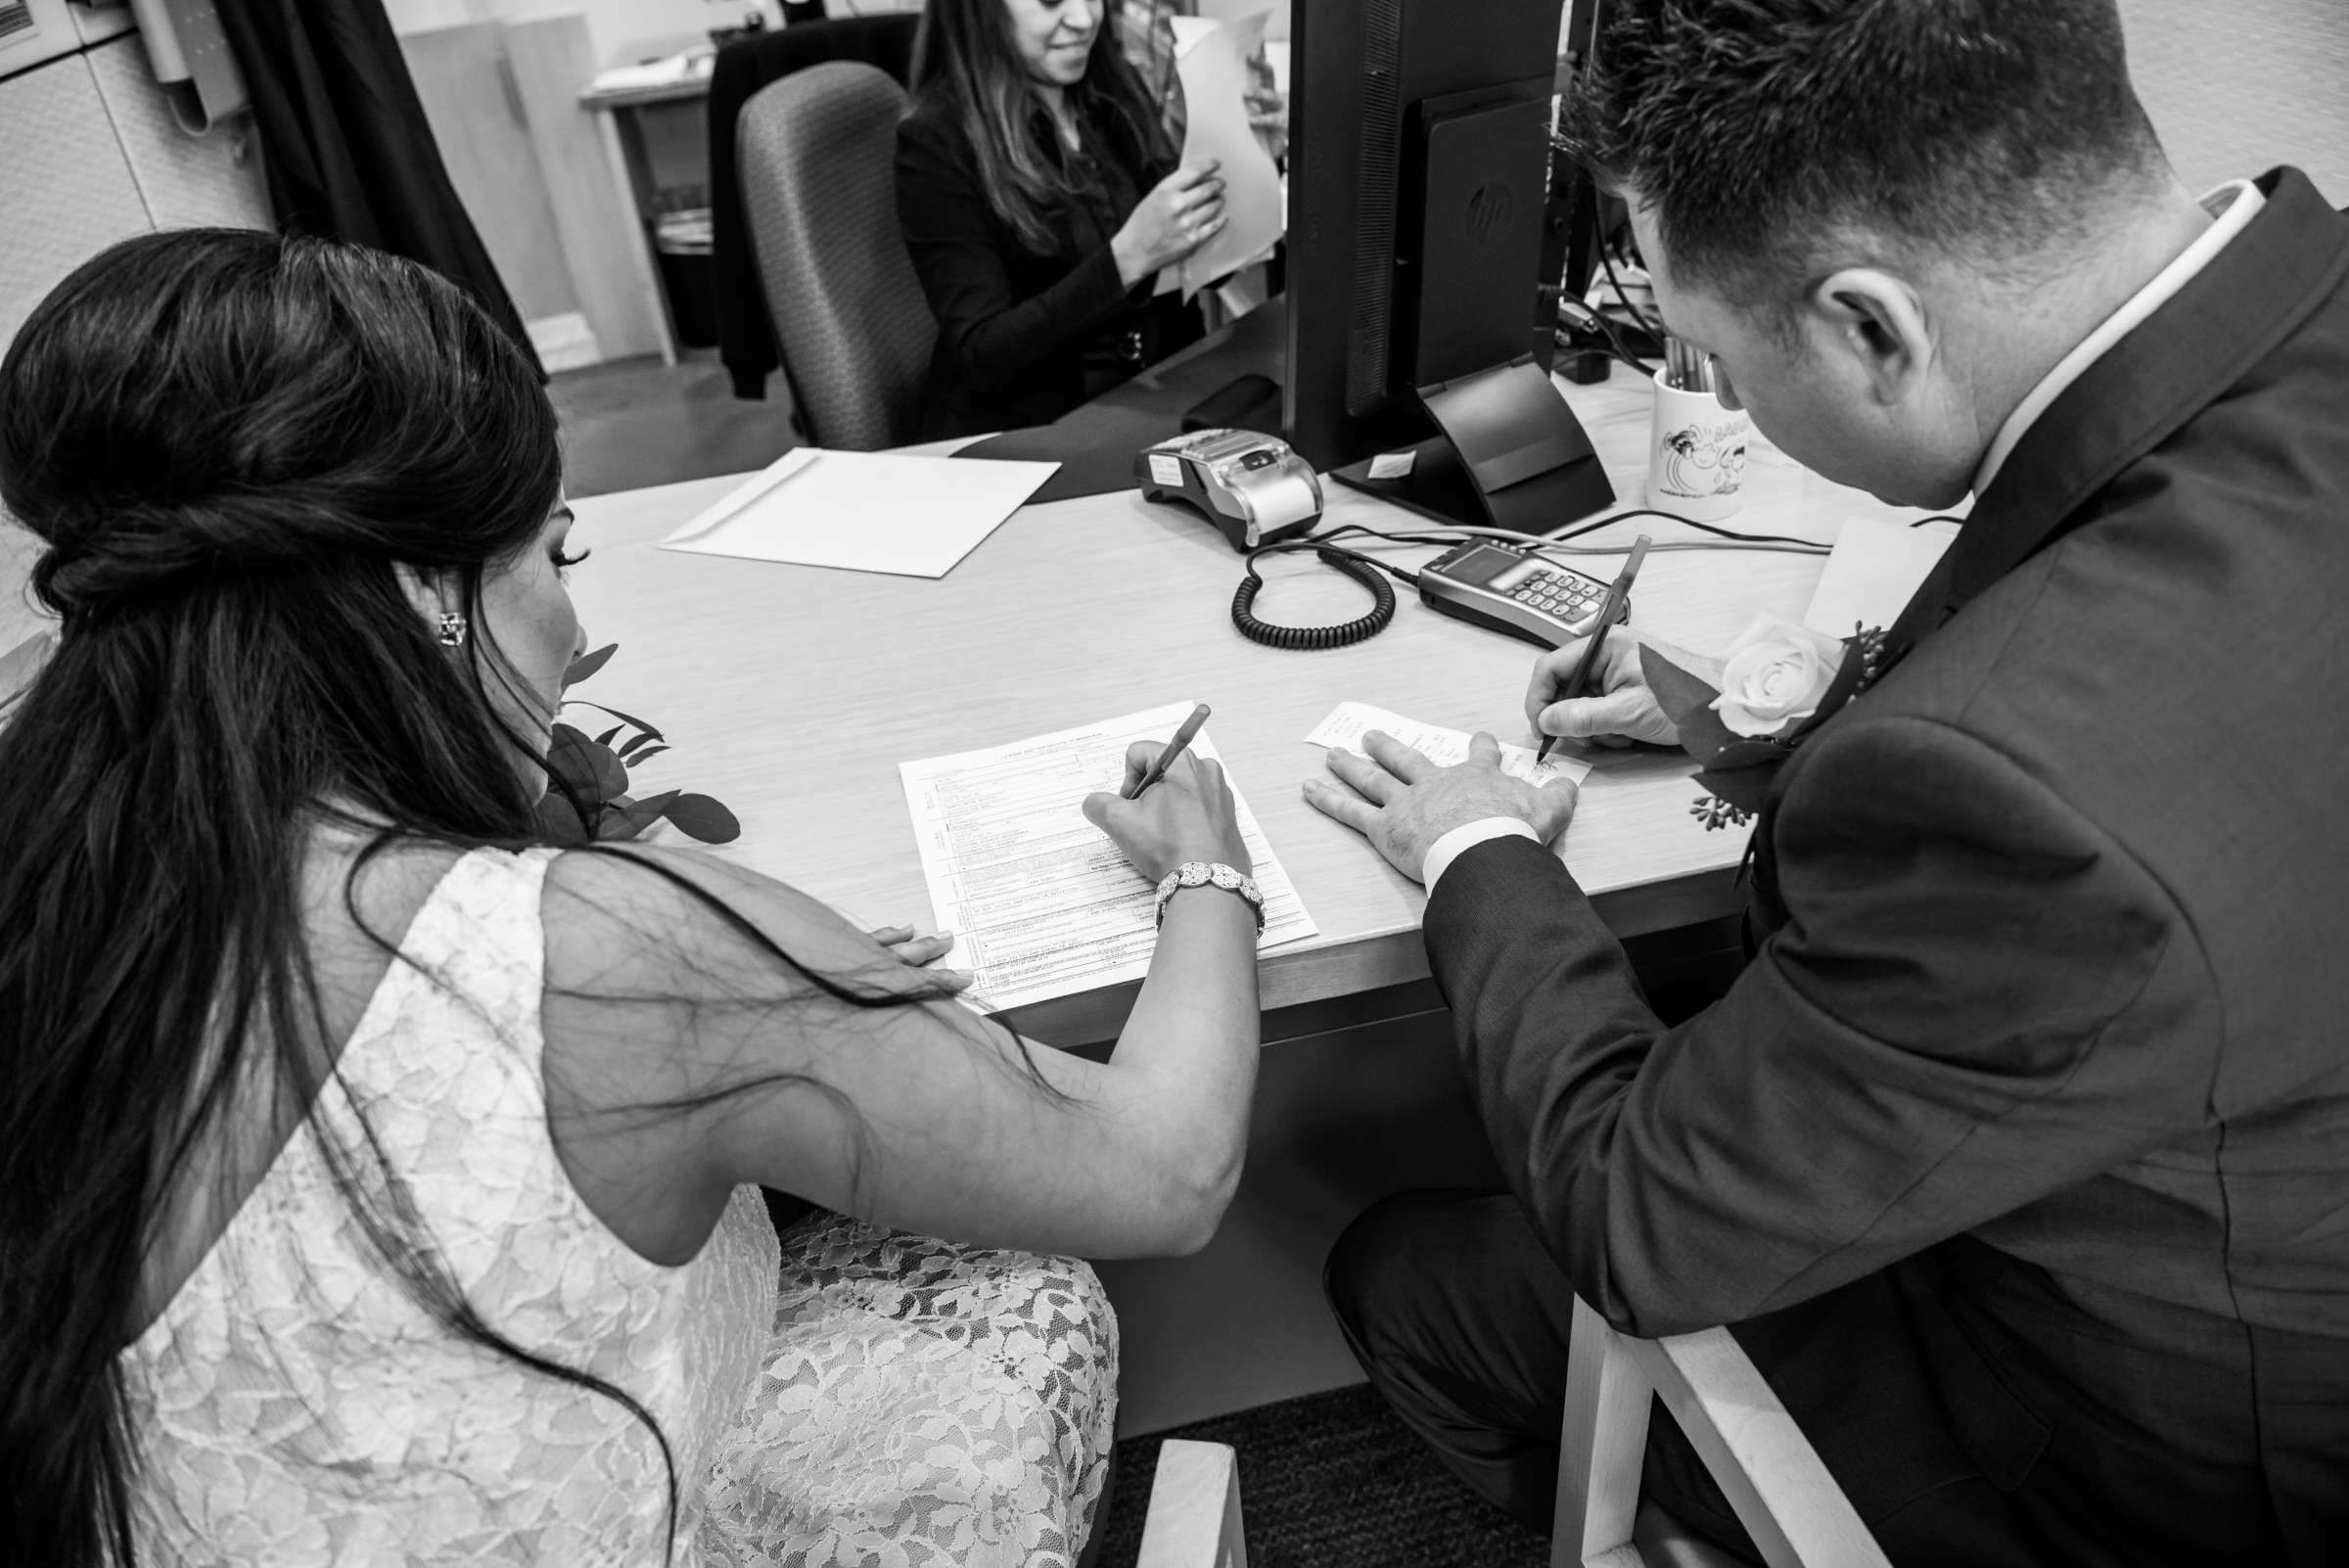 San Diego Courthouse Wedding, Alyah and Brian Wedding Photo #9 by True Photography